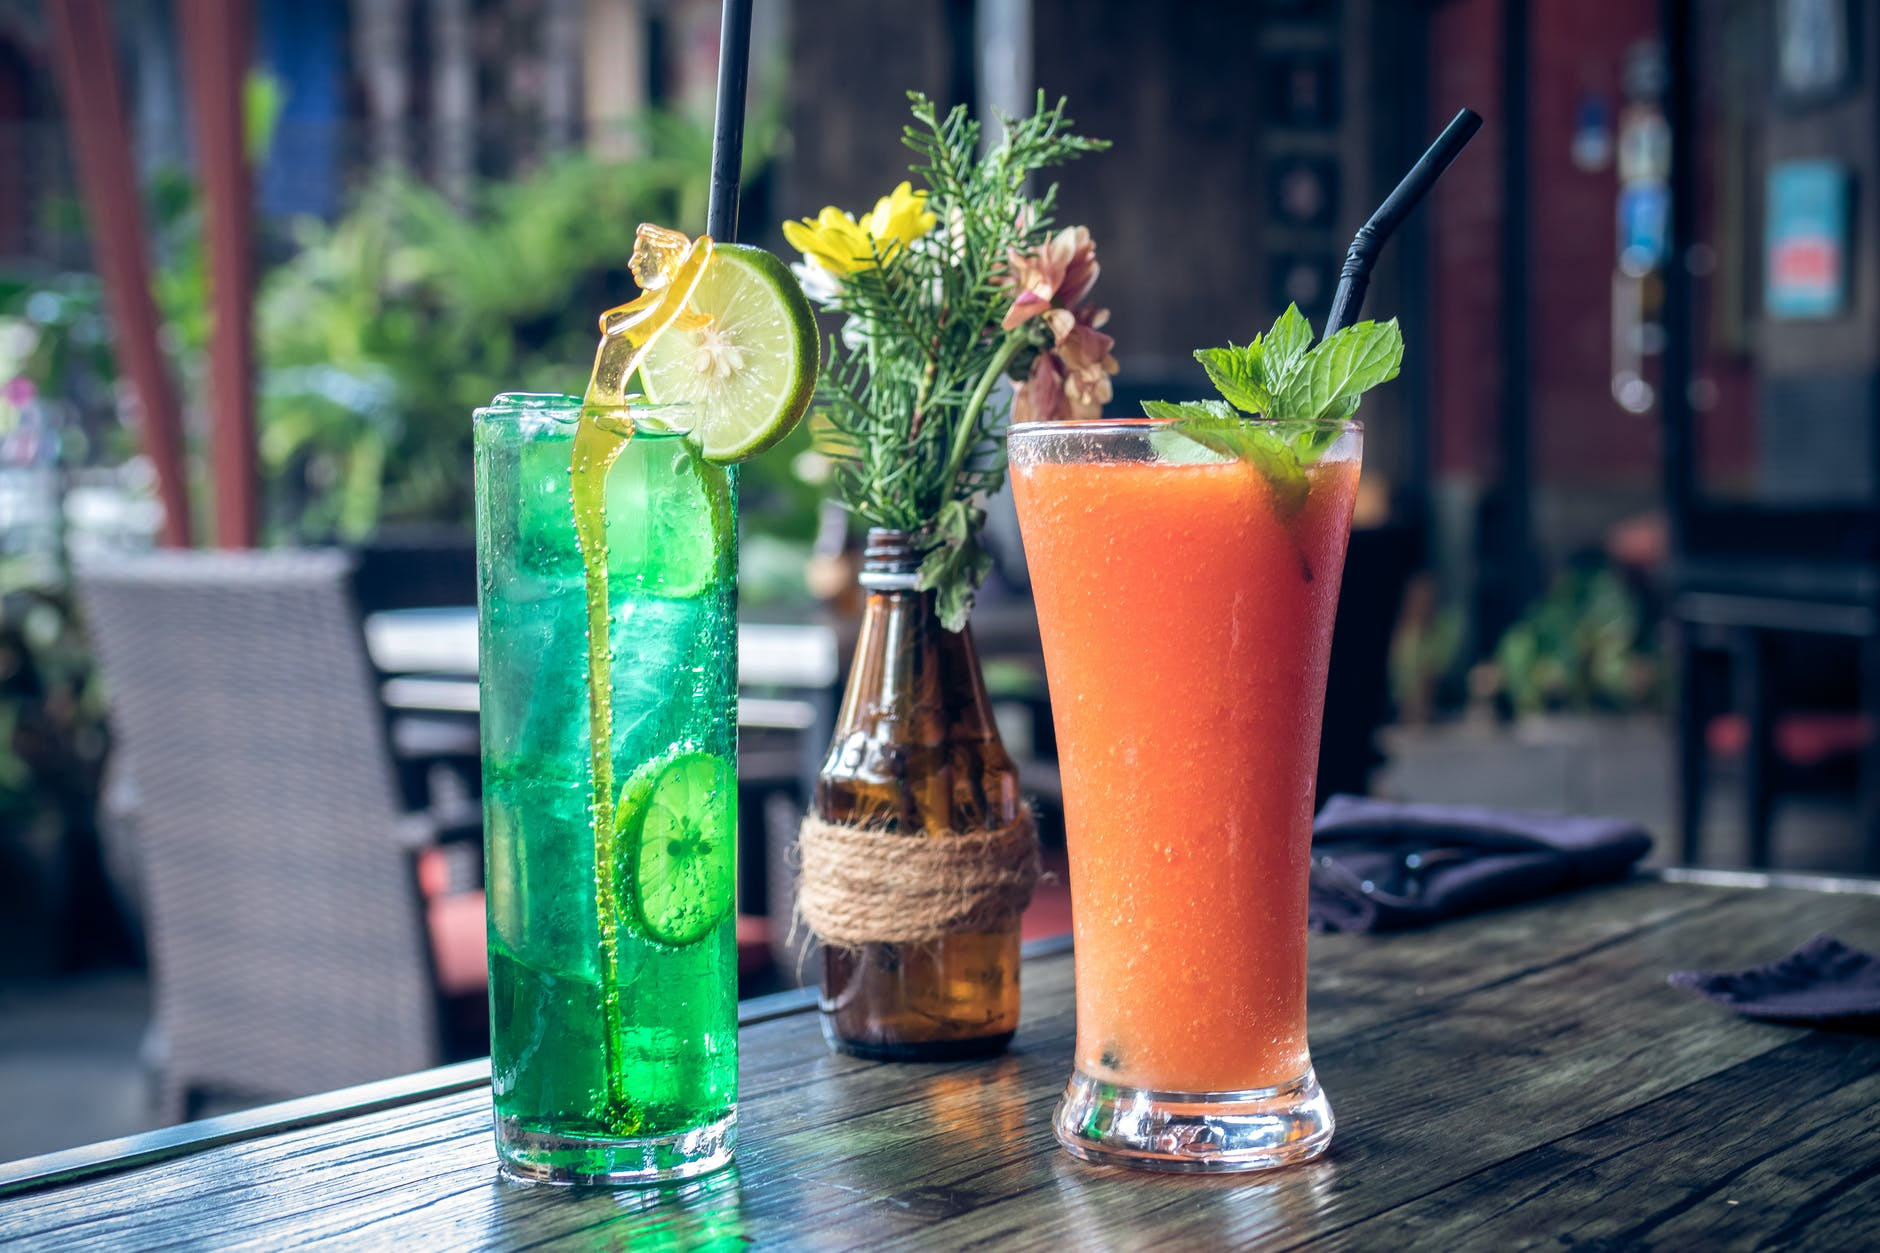 John Spach throws light on immunity-boosting juices you can include in your diet during the COVID 19 pandemic